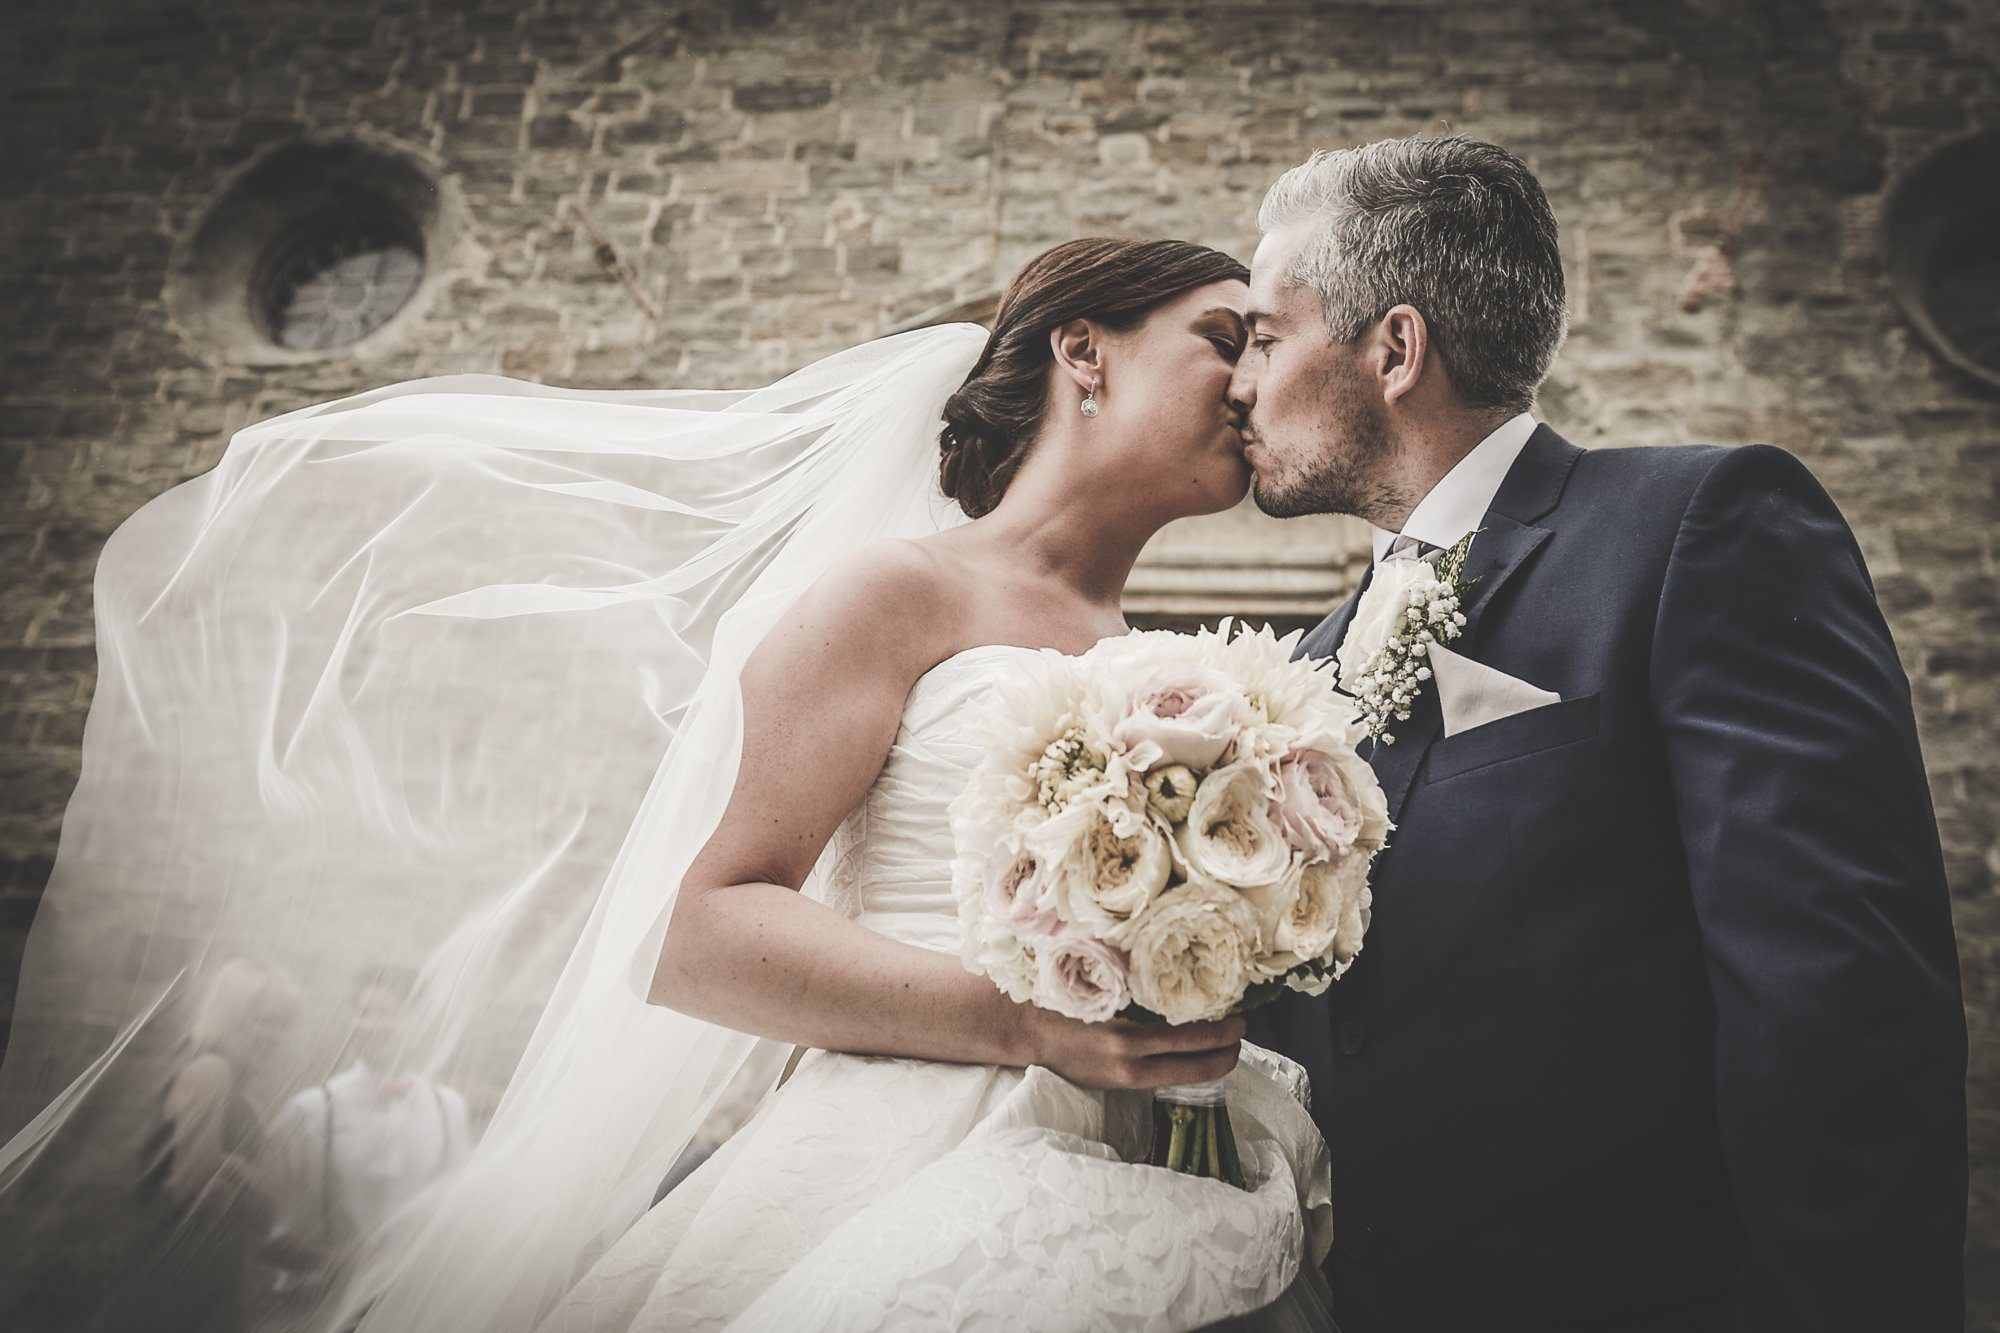 Information about the Tuscany Wedding Villas